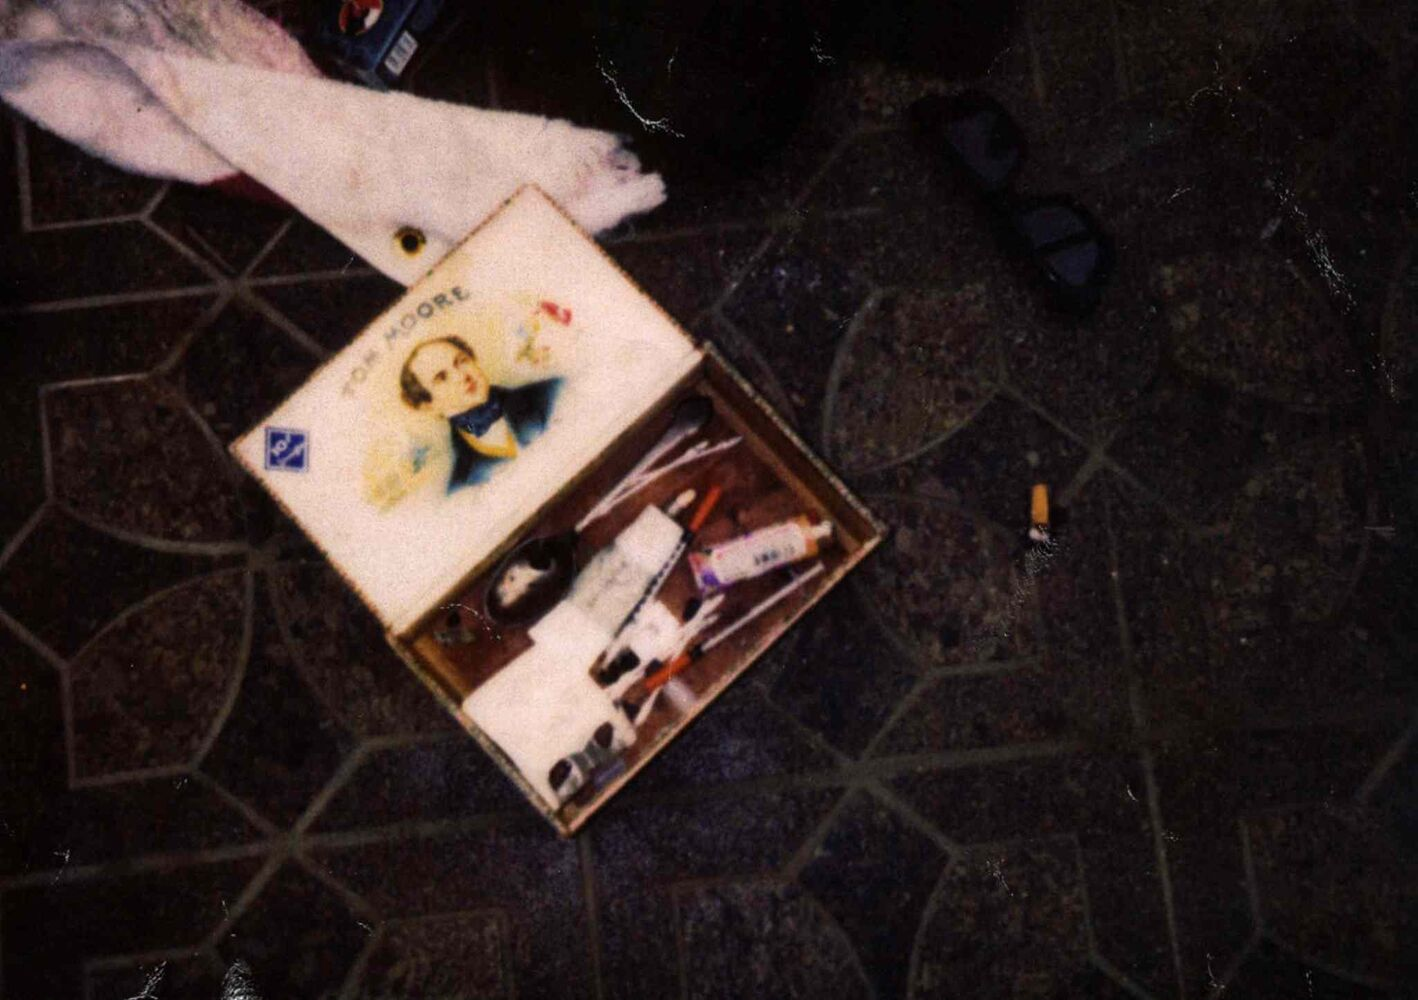 The second new photograph showed the contents the inside of a box found near Kurt Cobain's body. The box contained drug paraphernalia. (Seattle Police Department)